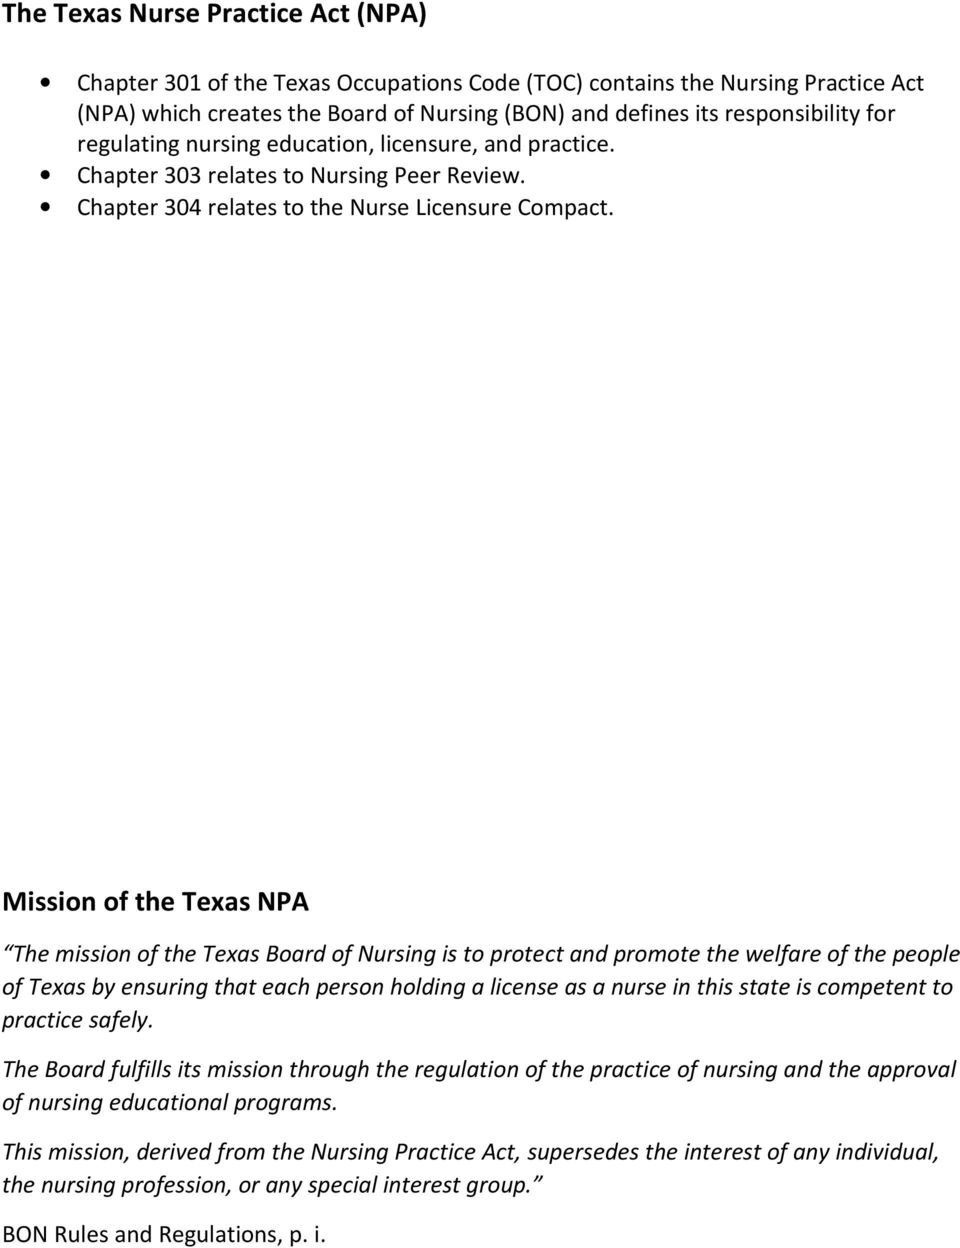 Mission of the Texas NPA The mission of the Texas Board of Nursing is to protect and promote the welfare of the people of Texas by ensuring that each person holding a license as a nurse in this state